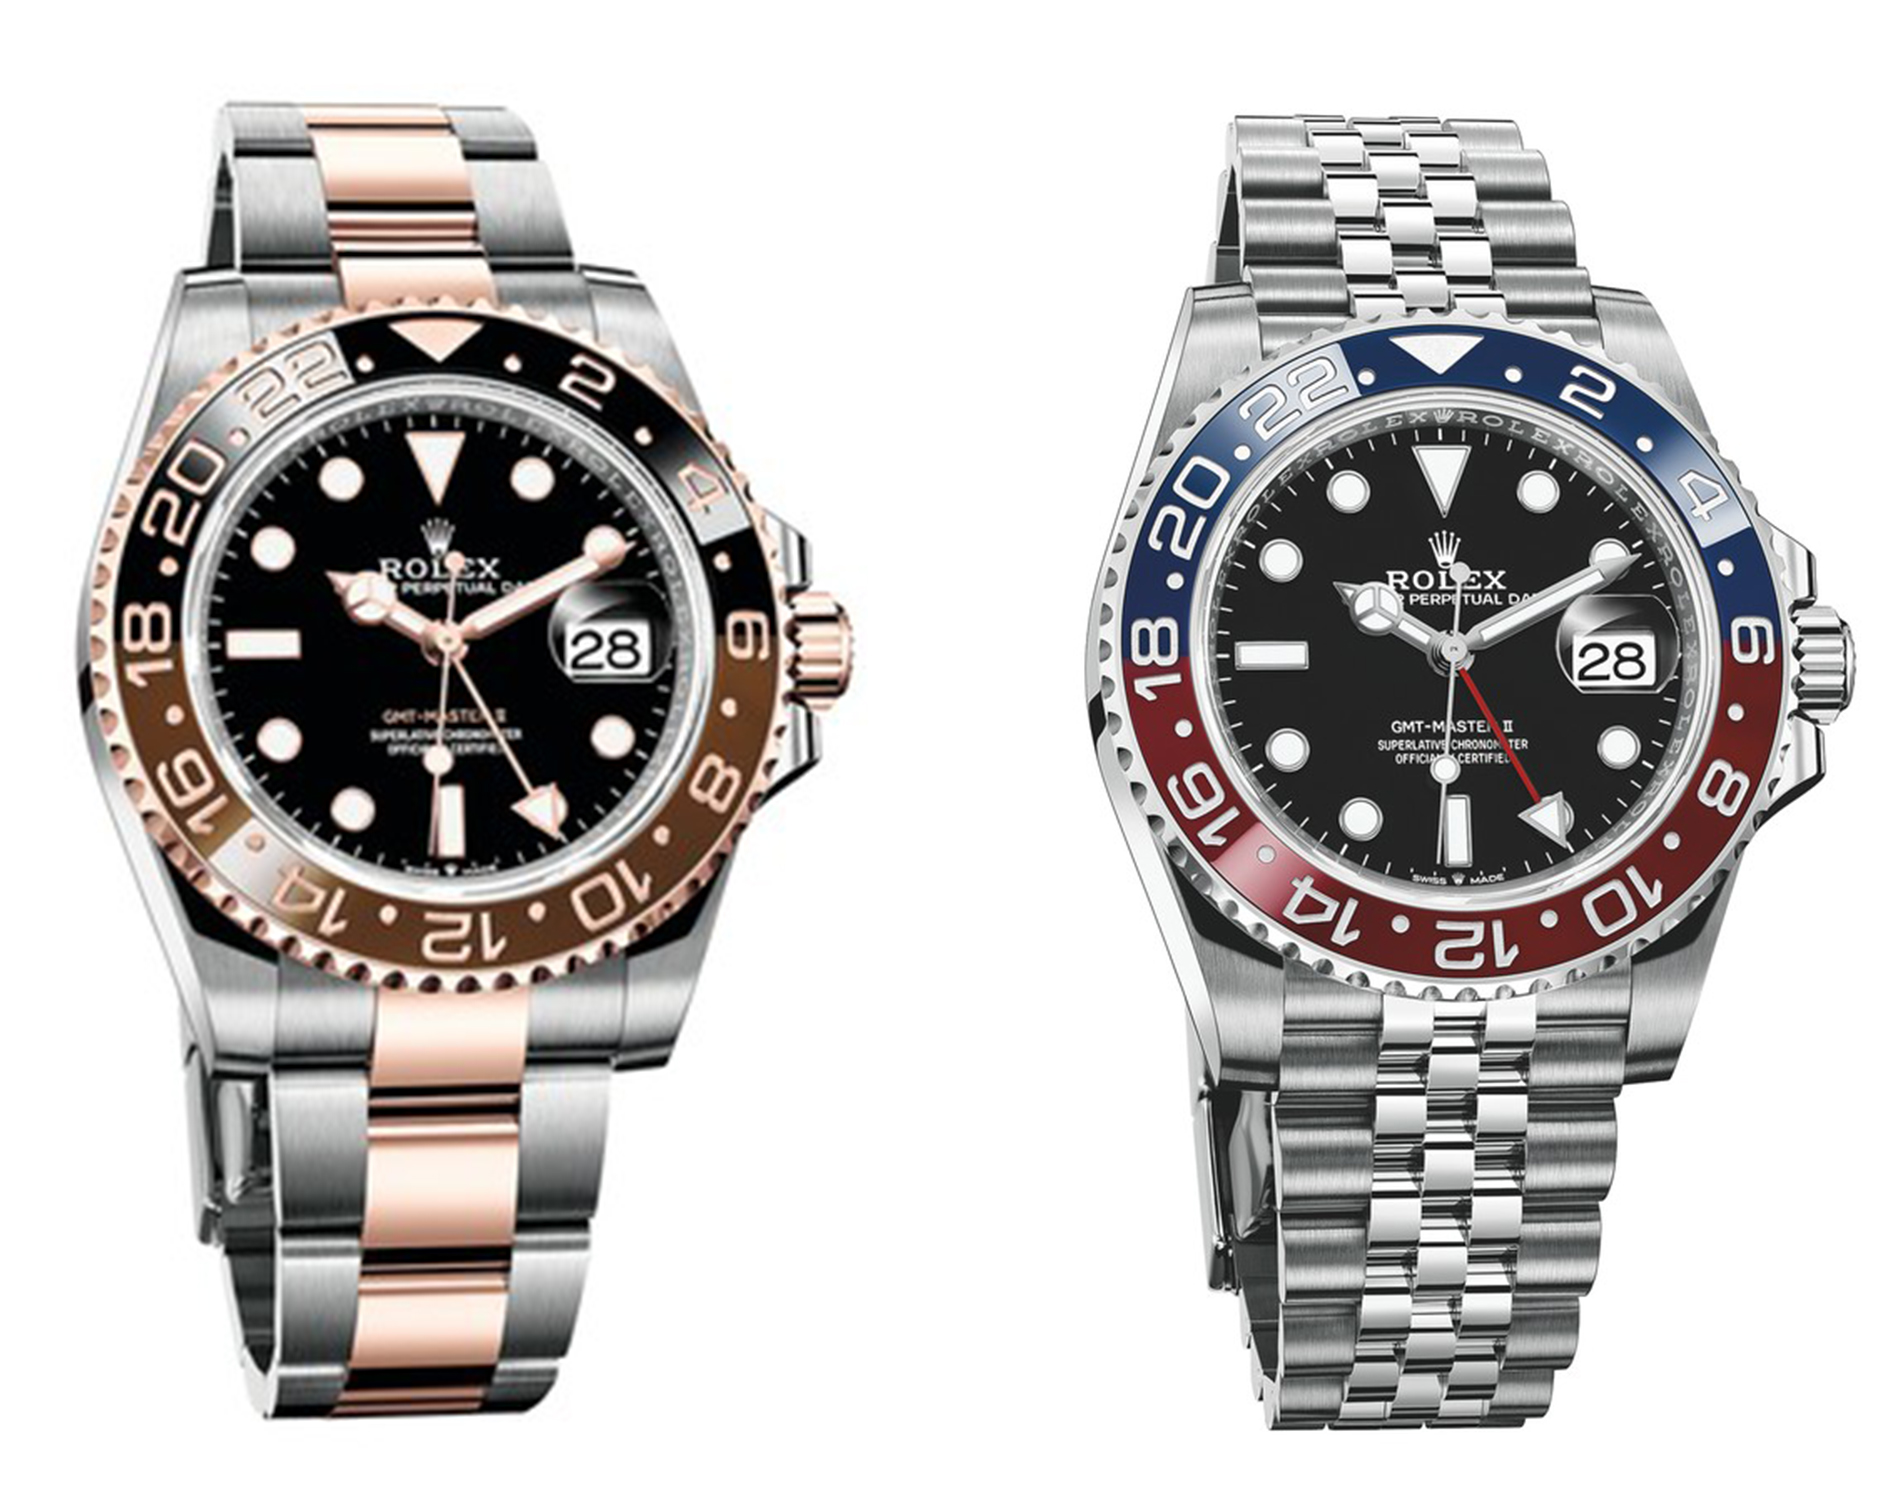 Rolex GMT Master II Nespresso and Pepsi